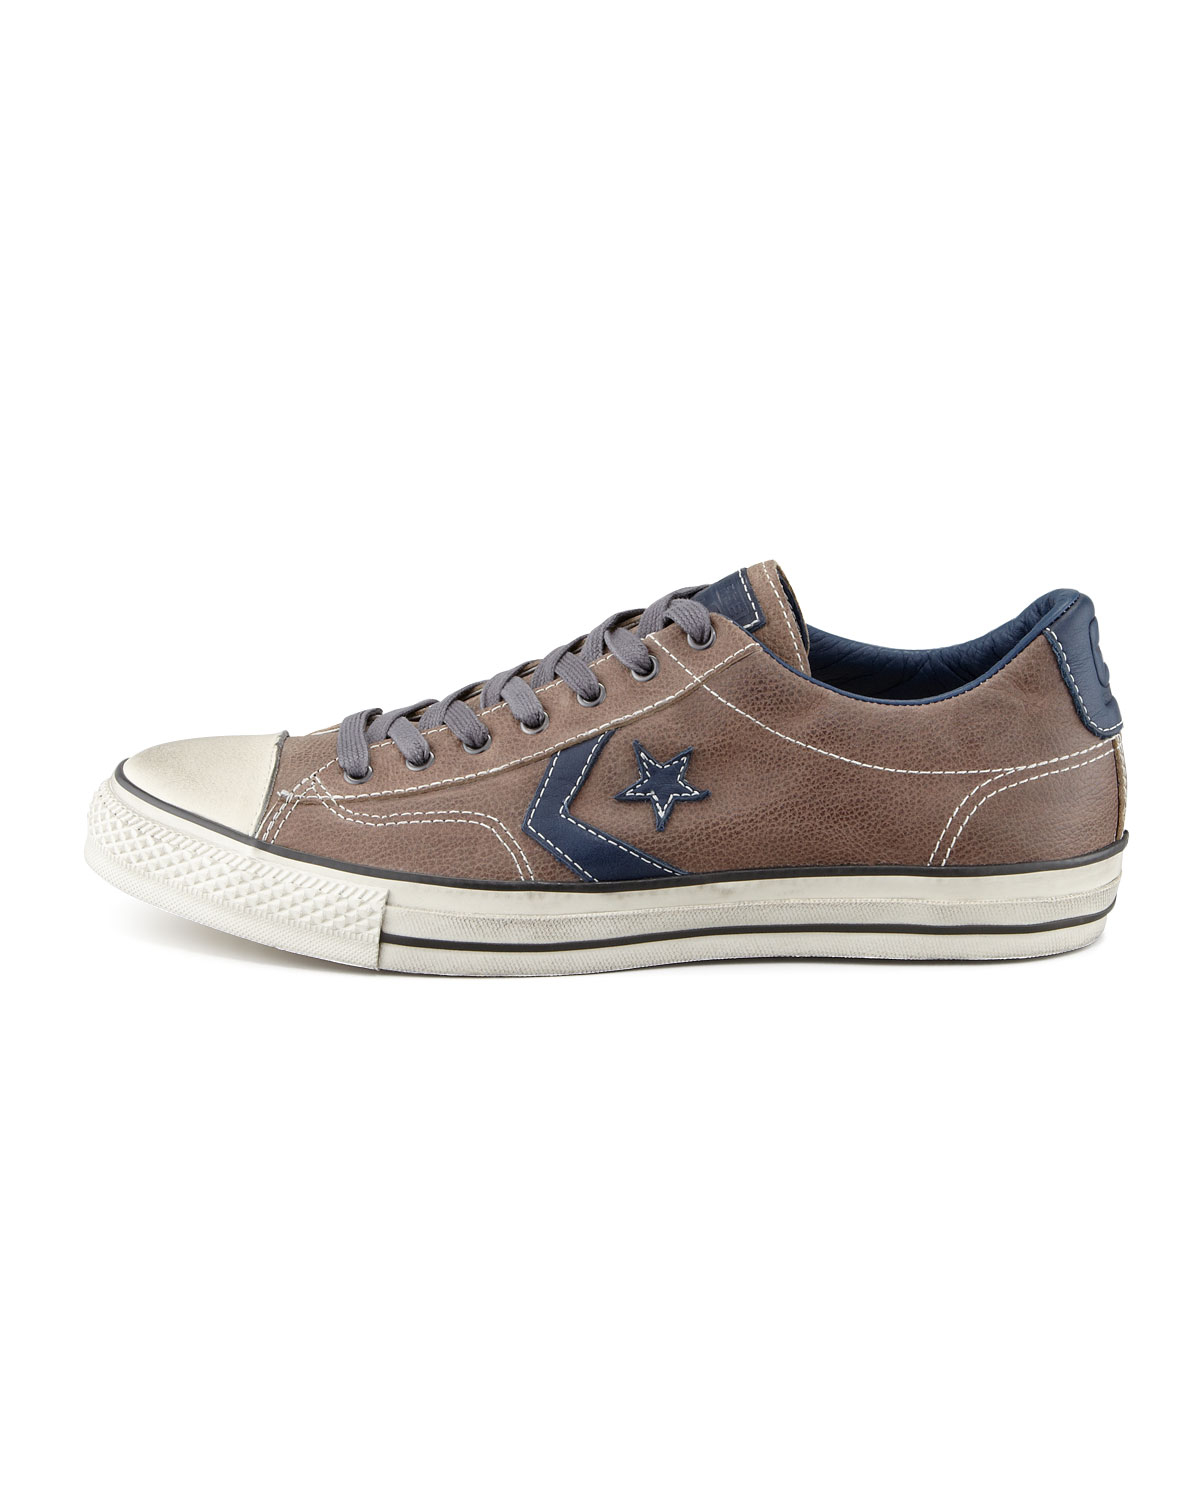 Converse Leather Star Player Ev Lowtop Sneaker Brownblue